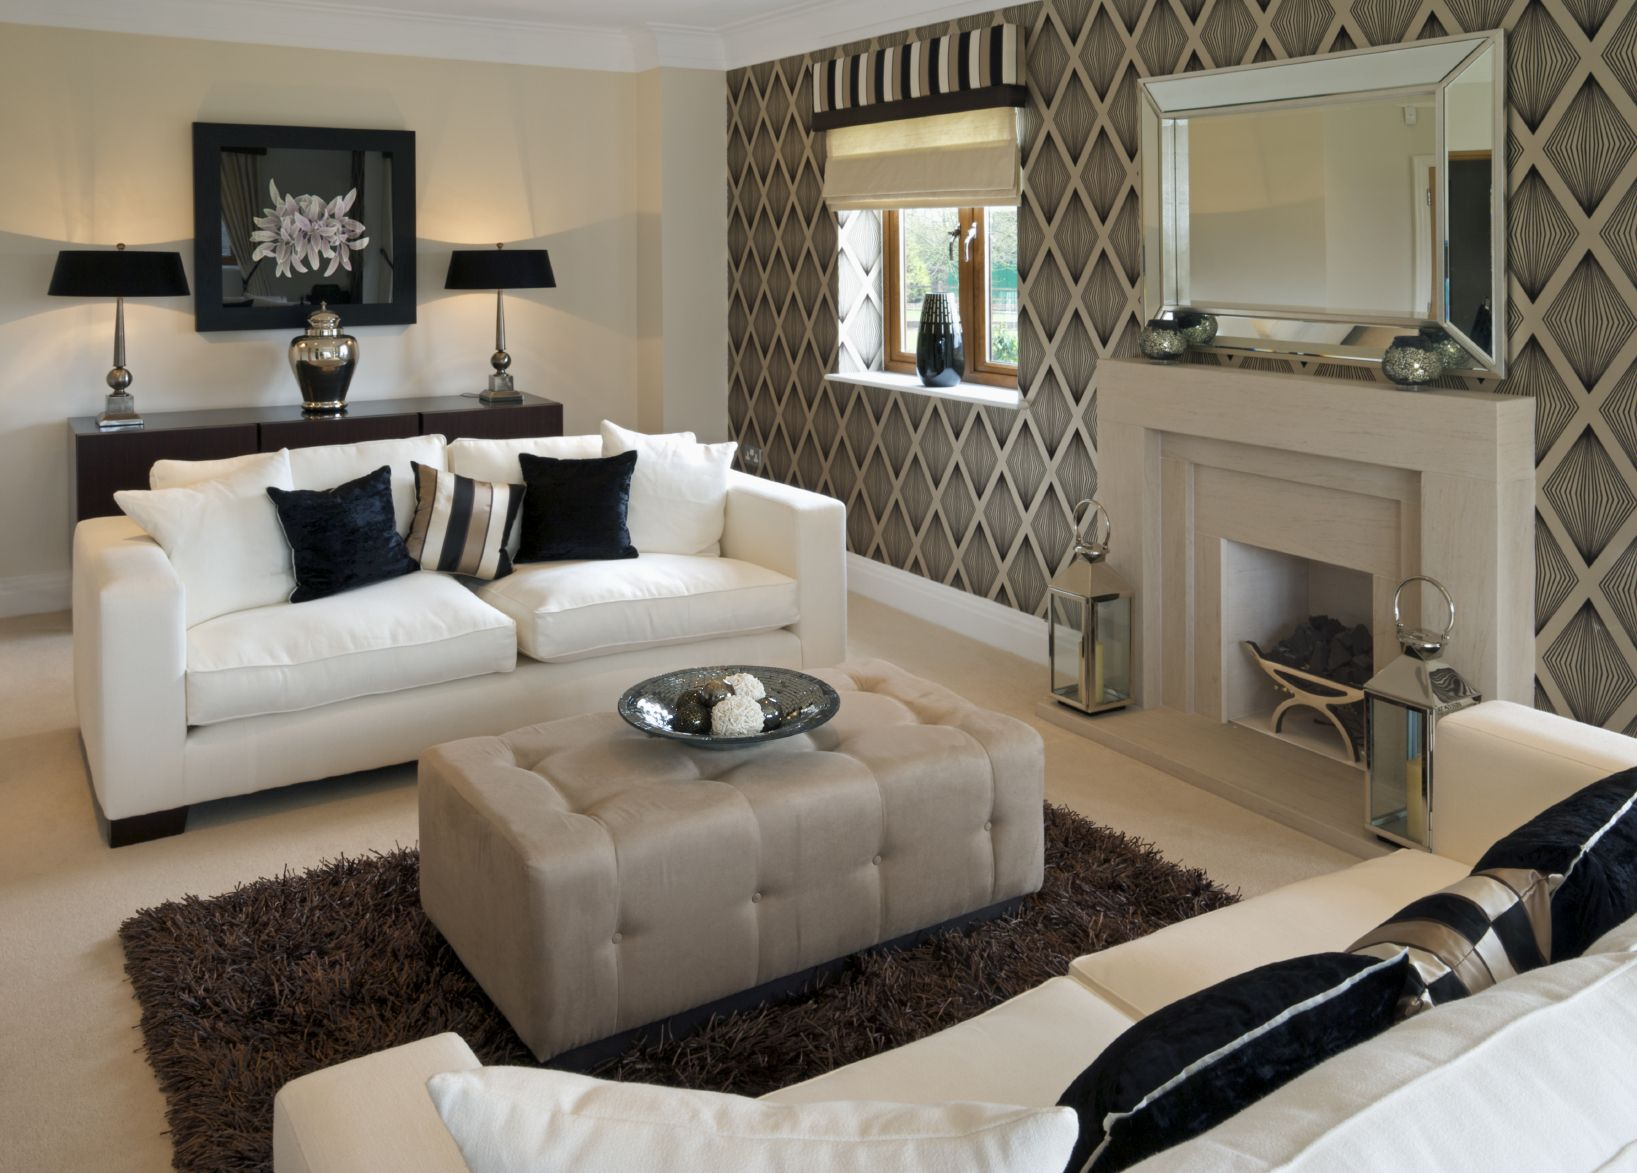 Modern Look Living Room Features White Sofas With Dark Decorative Pillows  Facing Over Rectangular Grey Ottoman